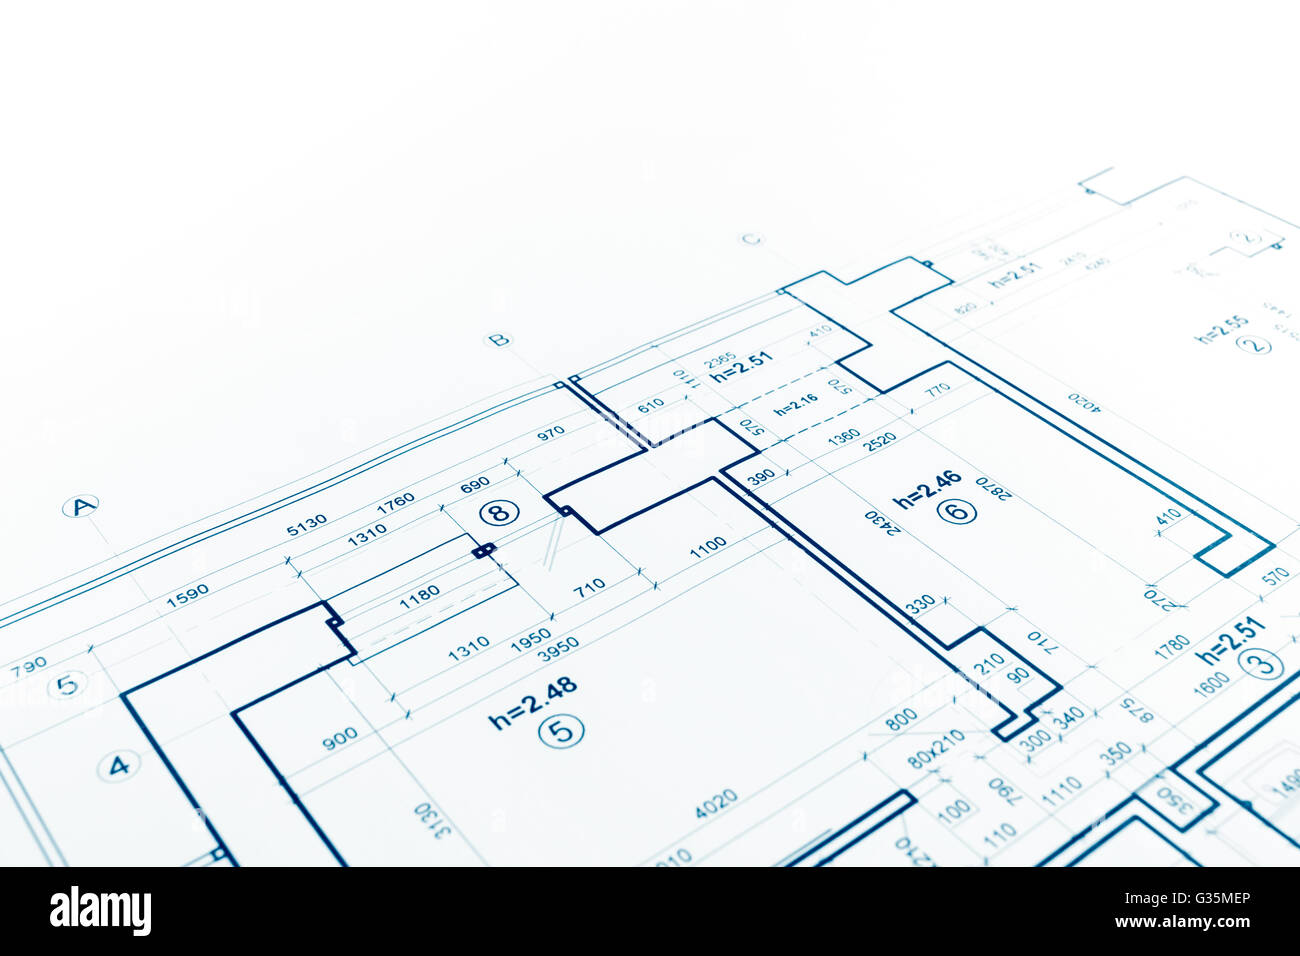 Attractive Blueprint Floor Plan, Technical Drawing, Construction Background